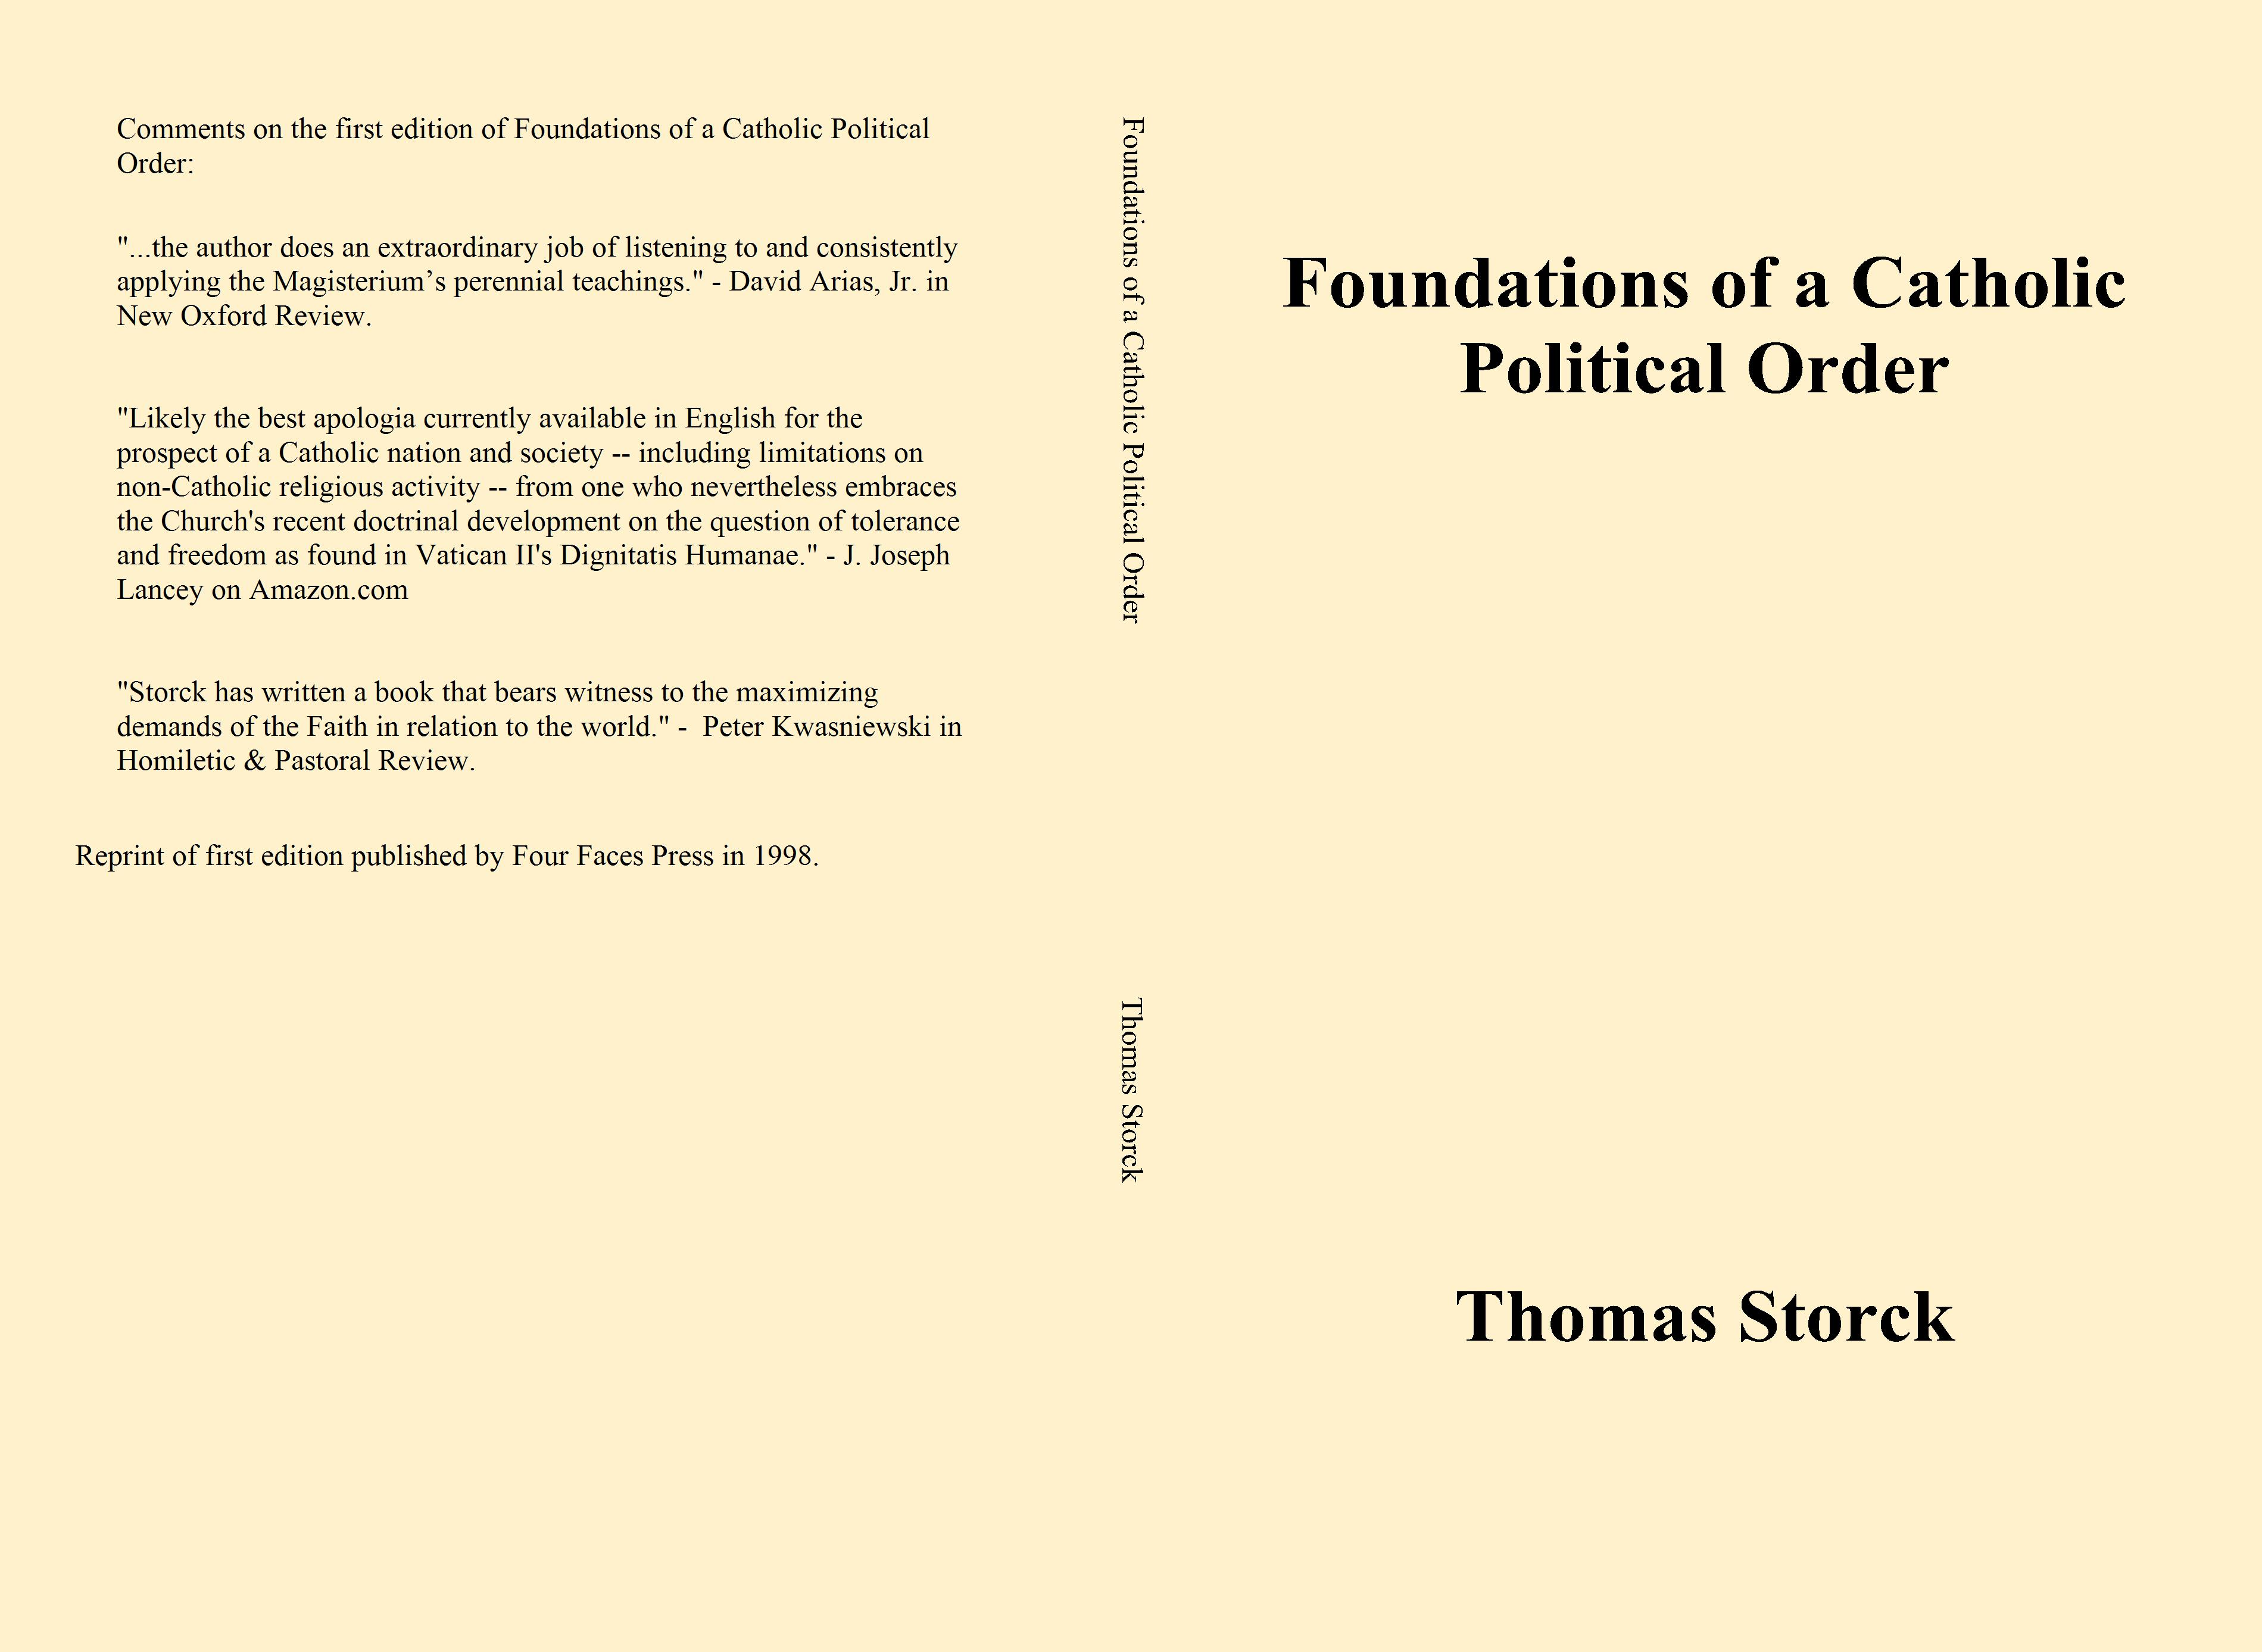 Foundations of a Catholic Political Order cover image